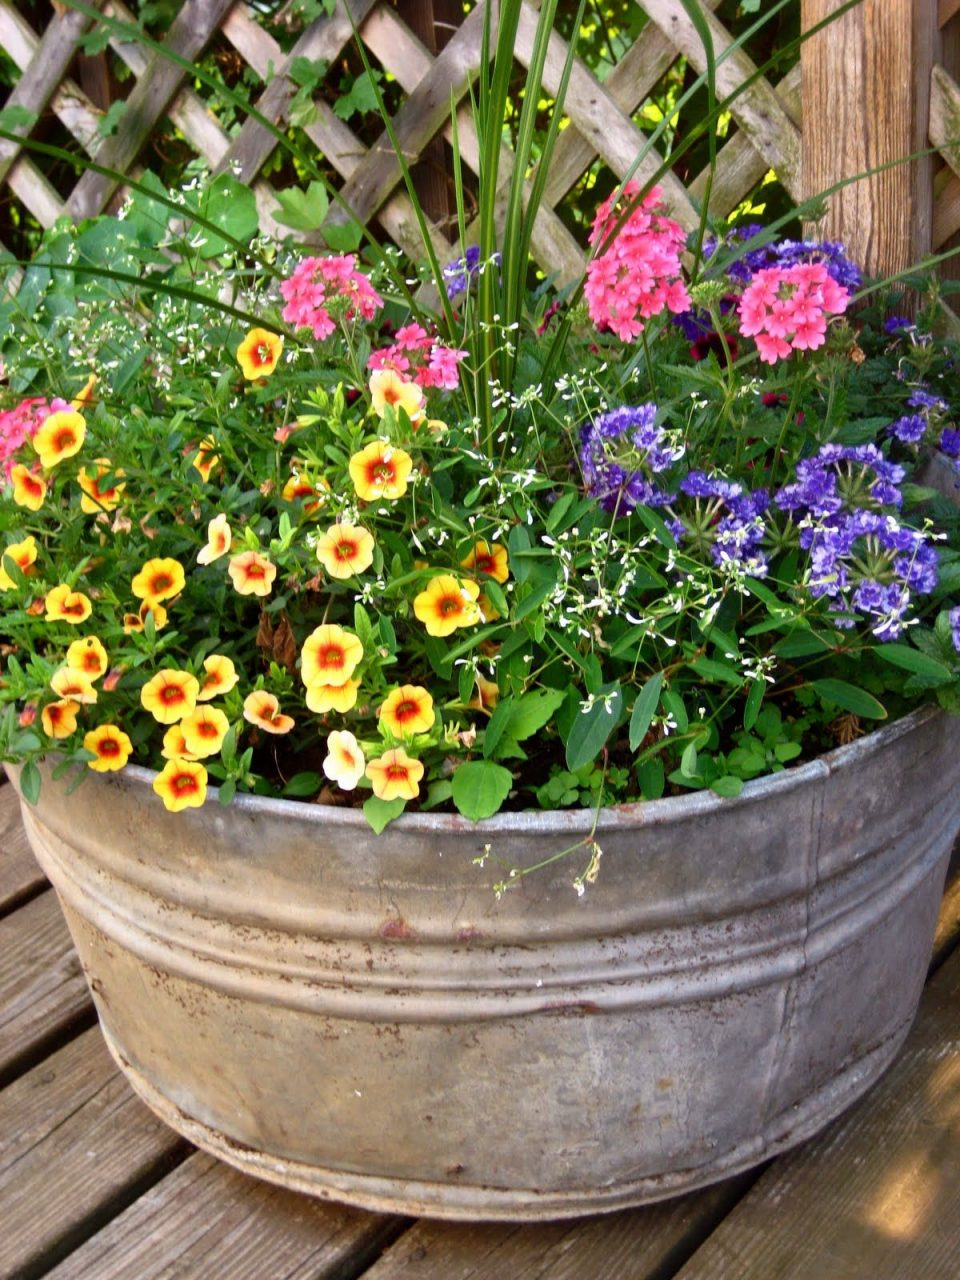 Outdoor Flower Containers This Galvanized Old Pot Contains Four